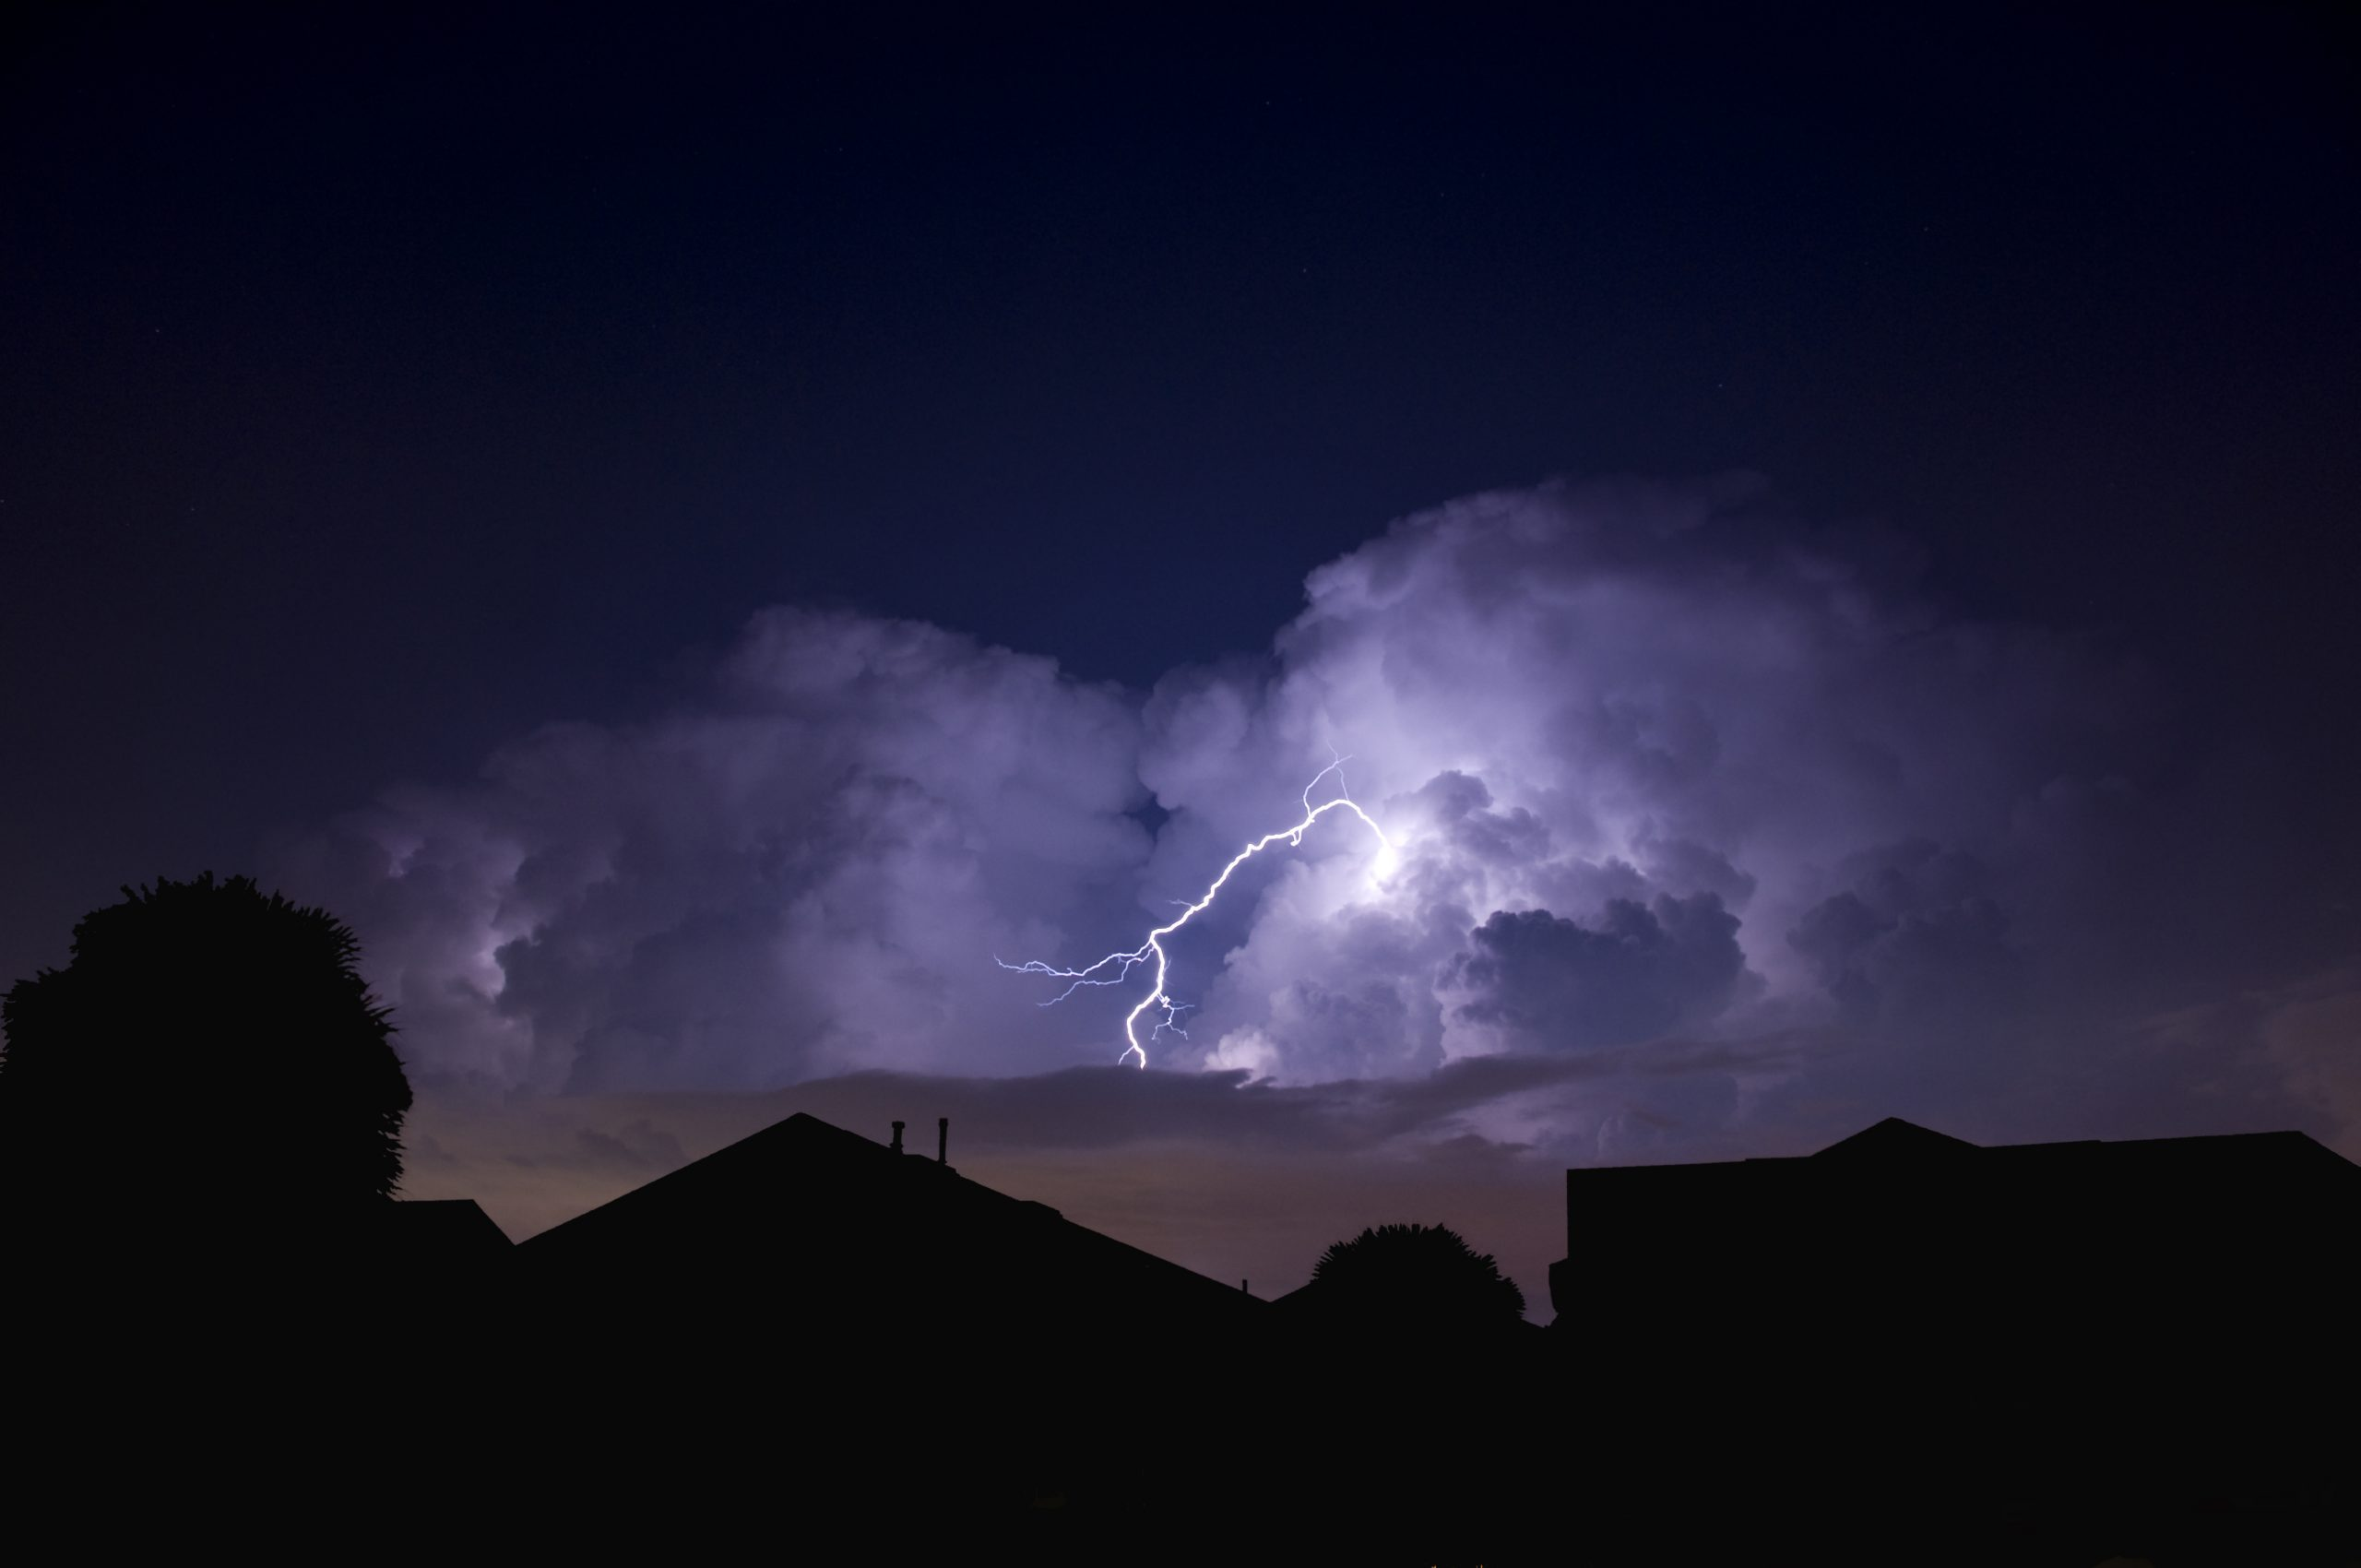 Lightning strike in a local neighborhood during a power outage